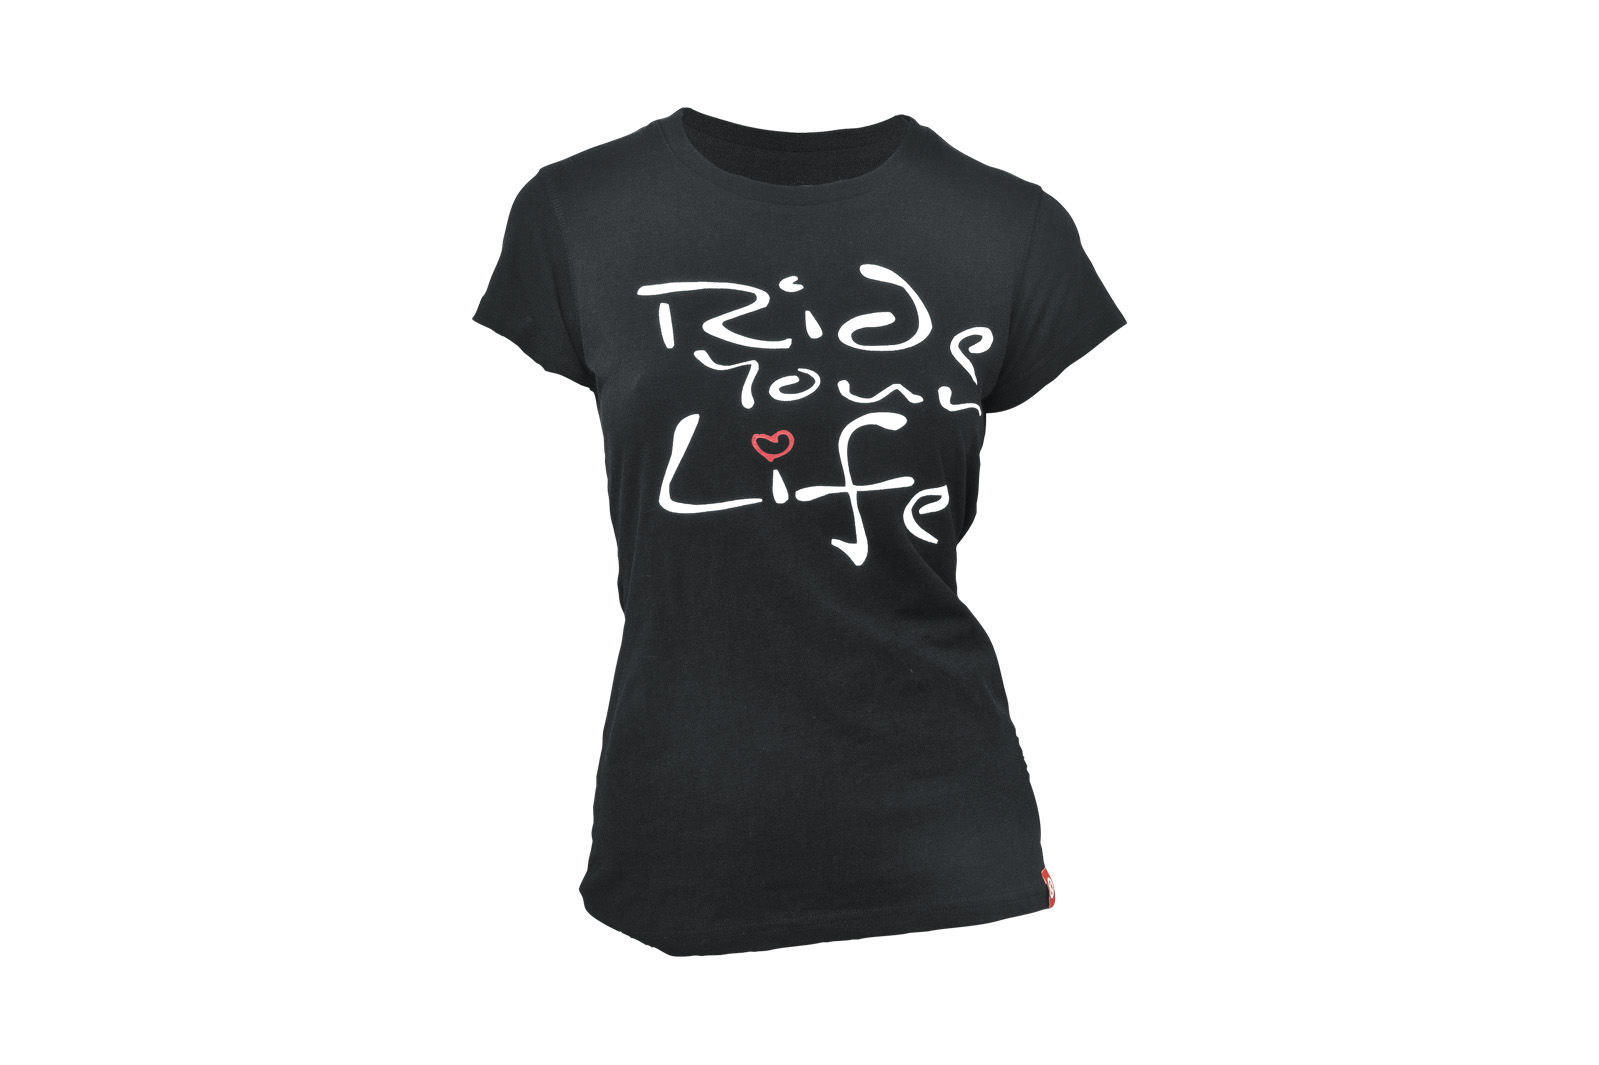 T-Shirt KELLYS WOMEN´S RIDE YOUR LIFE kurzarm Black - XS - T-Shirt KELLYS WOMEN´S RIDE YOUR LIFE kurzarm Black - XS